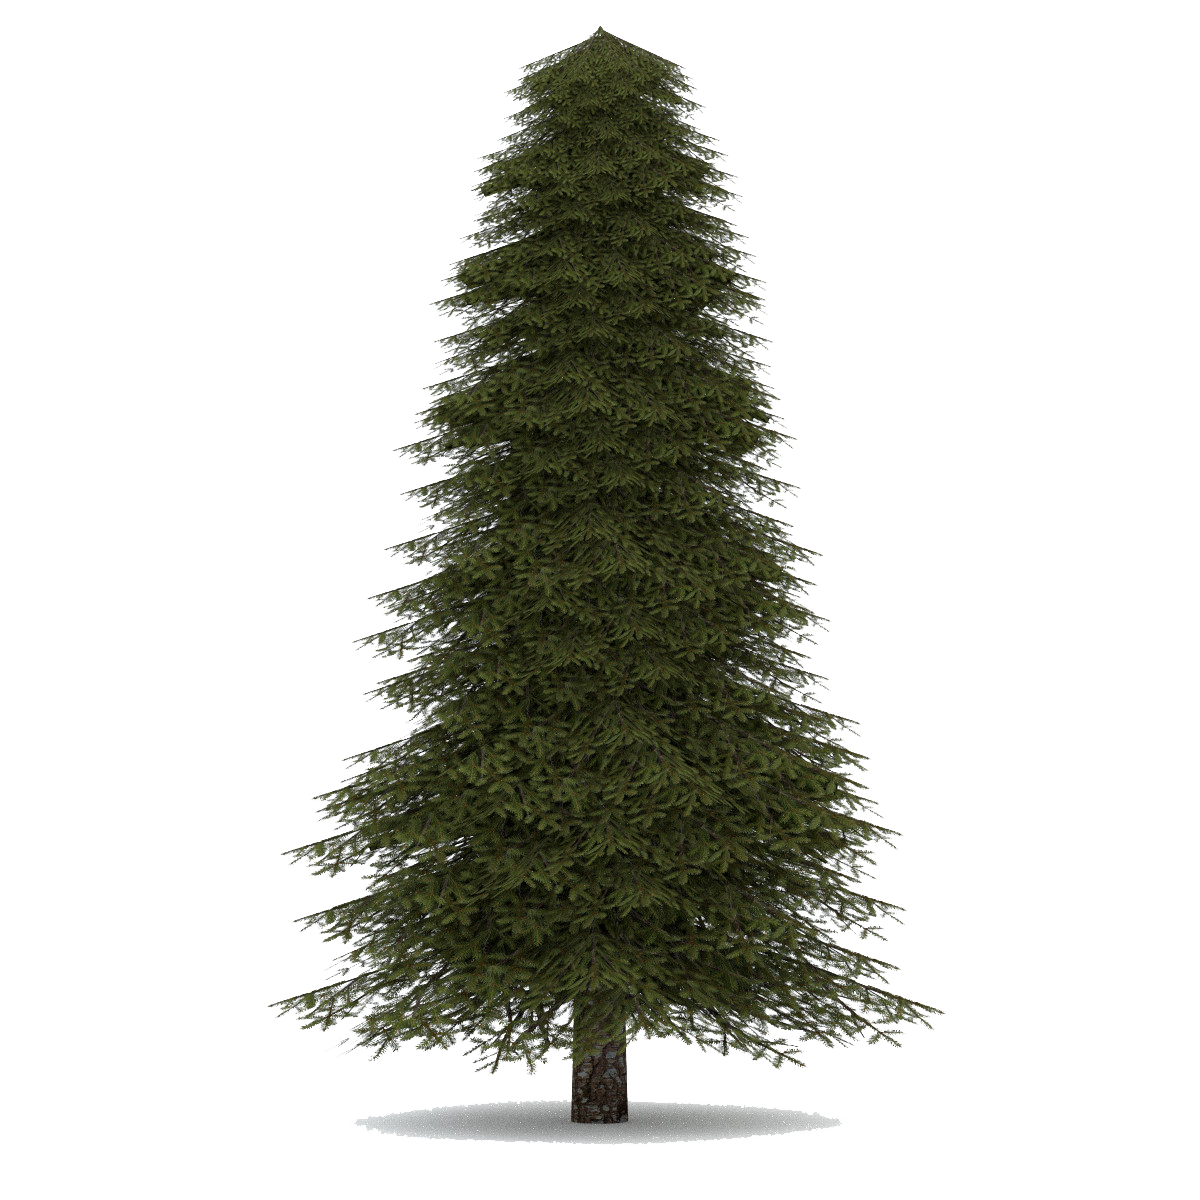 Evergreen tree png clipart images gallery for free download.